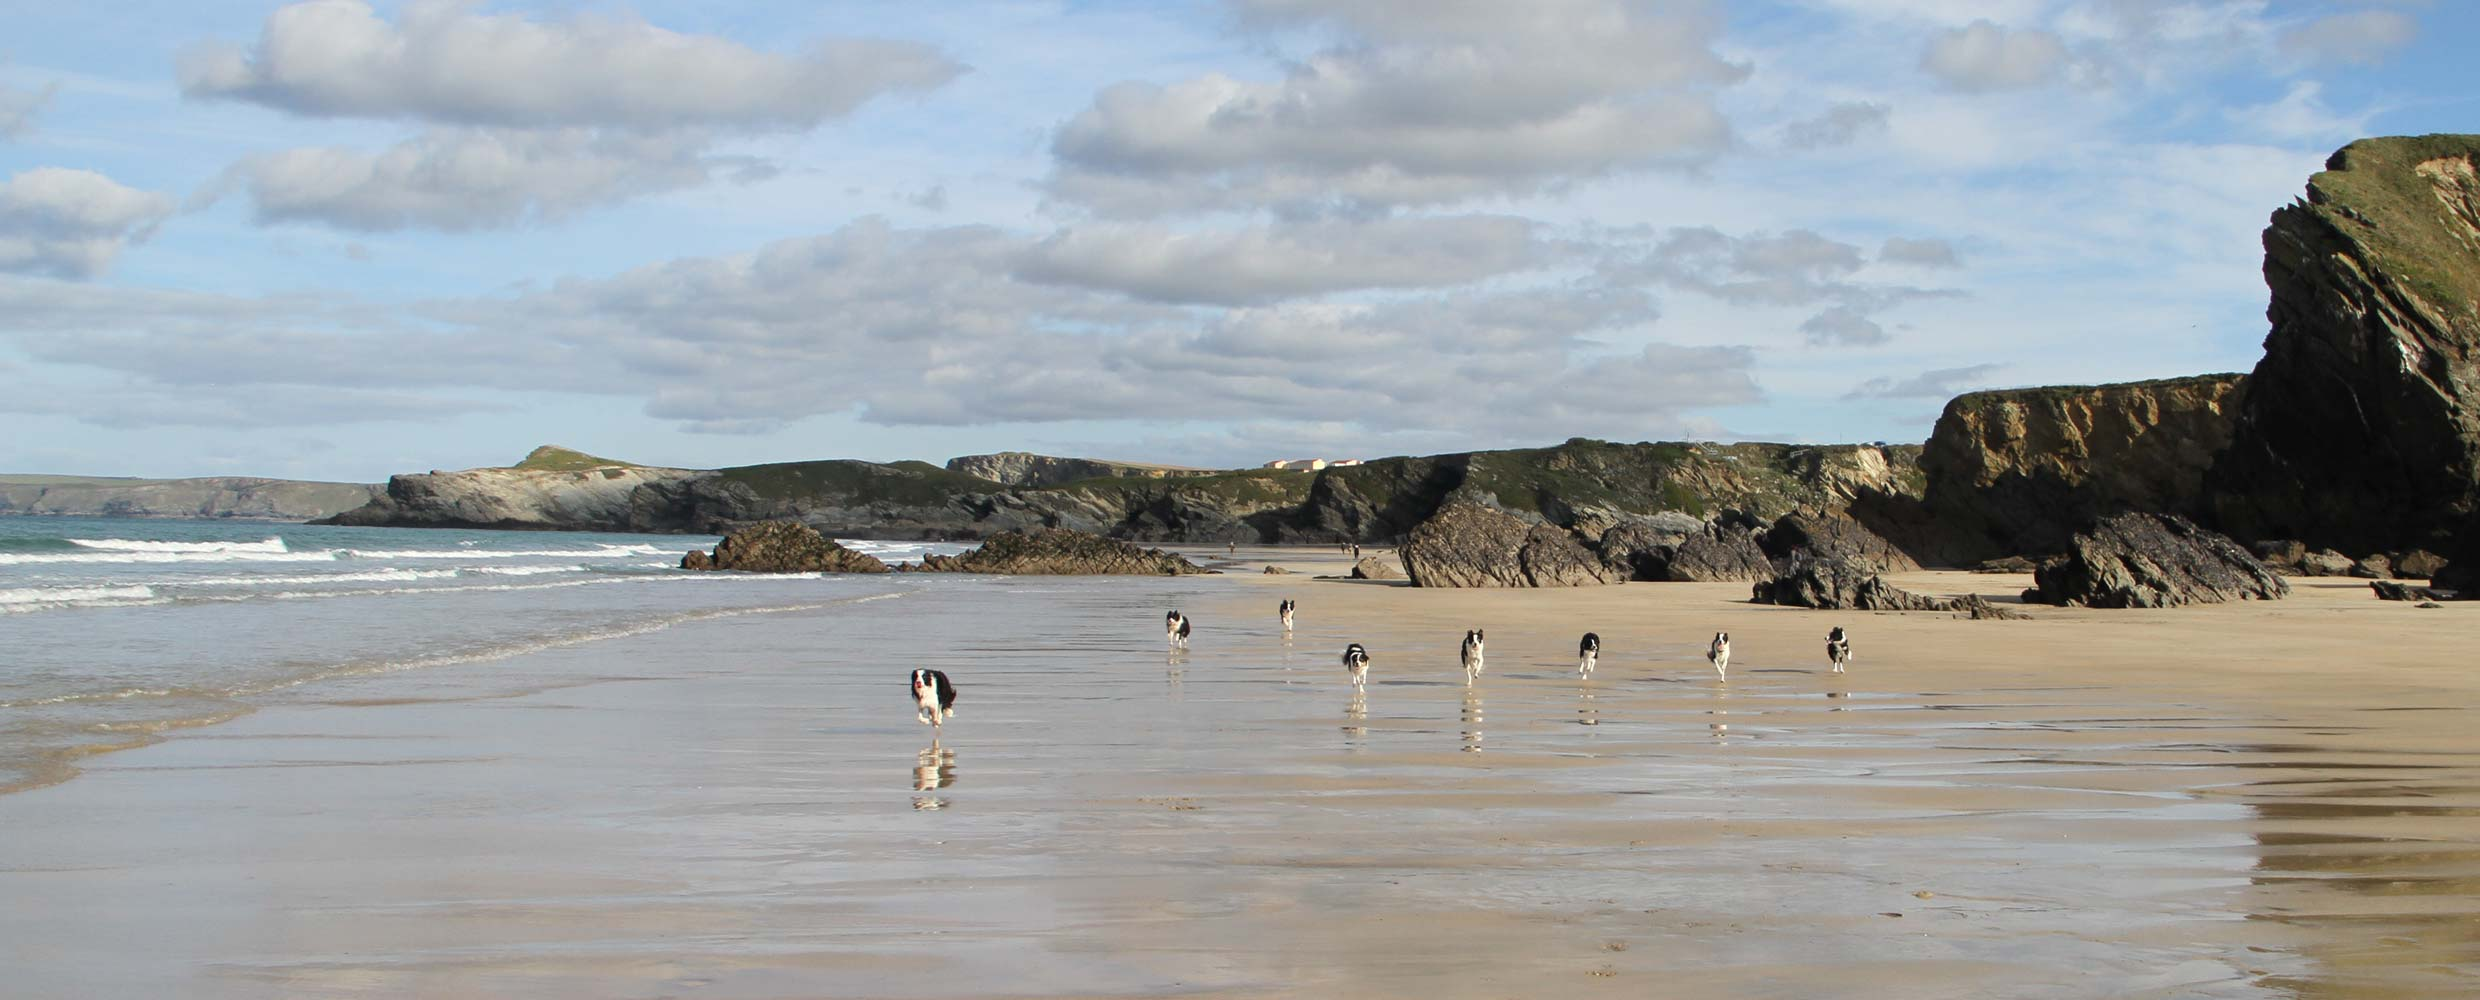 Alison's Border Collies doing a long distant recall across the beach in Newquay, Cornwall